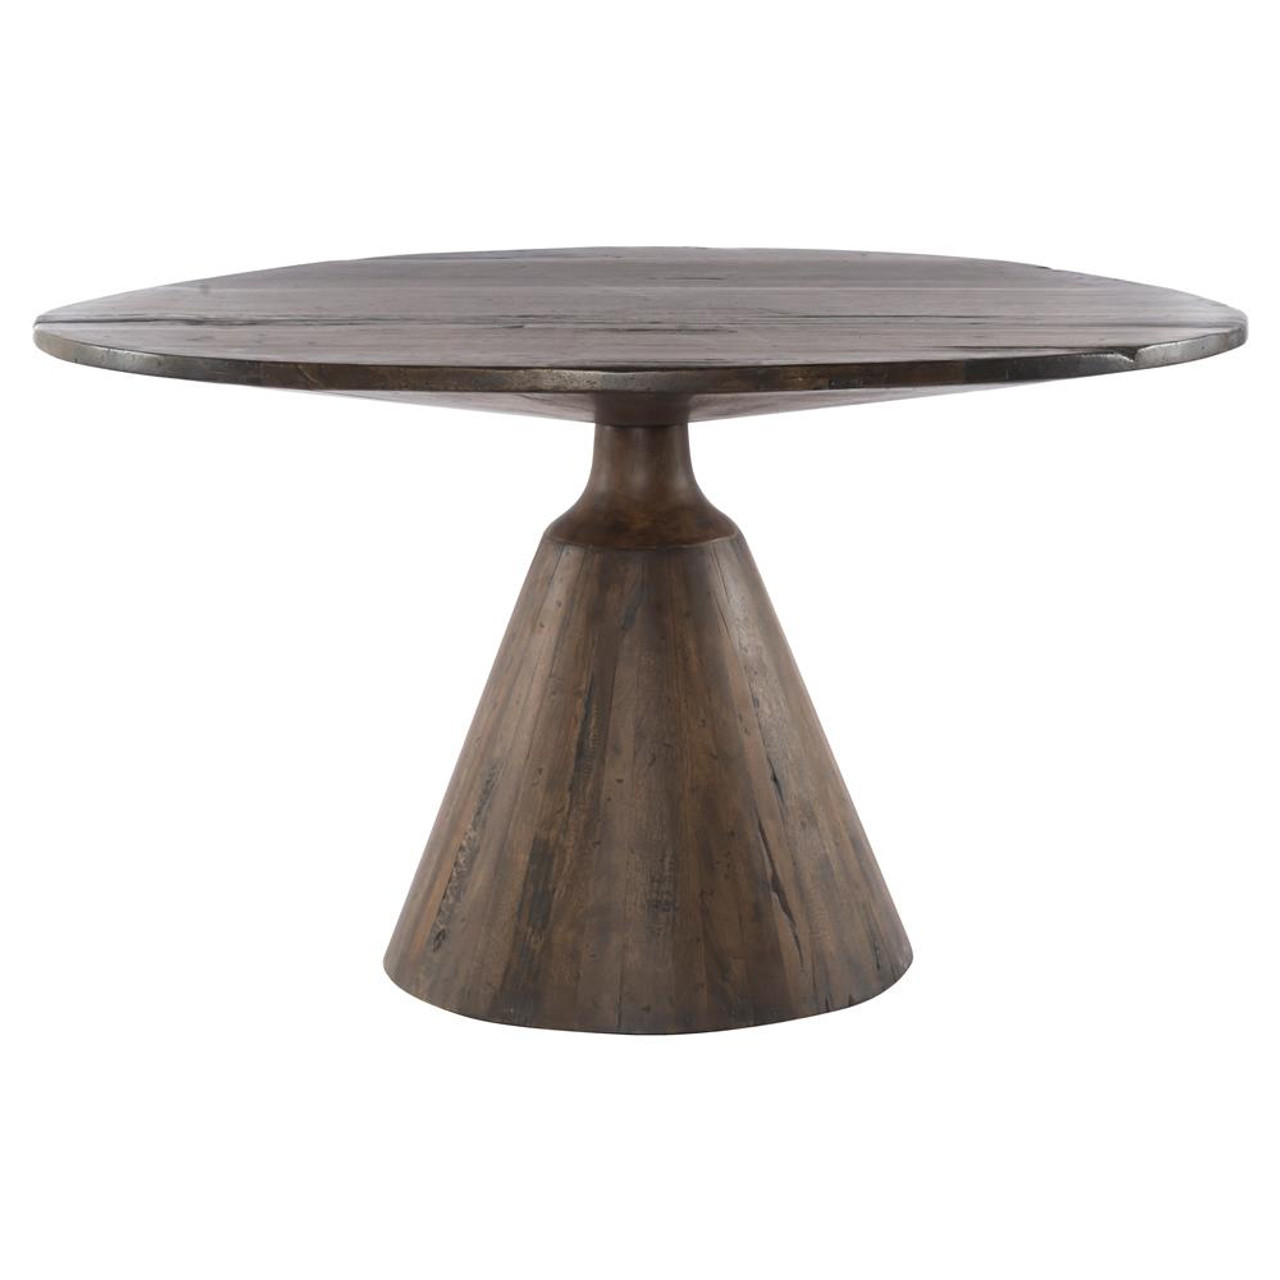 Bronx old wood round pedestal dining table 54